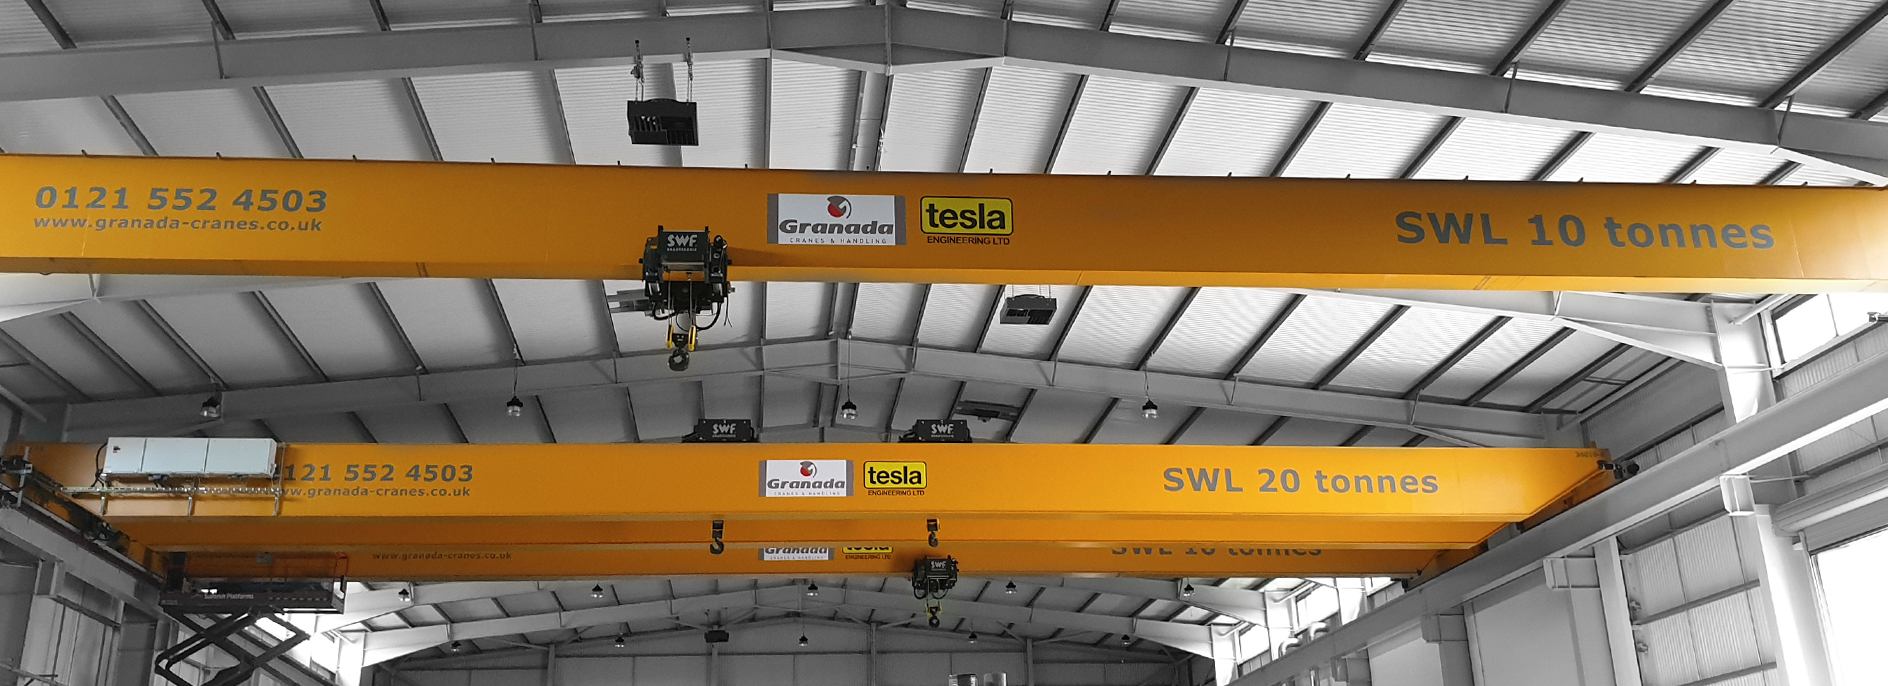 3 overhead cranes manufactured by Granada Cranes and Handling